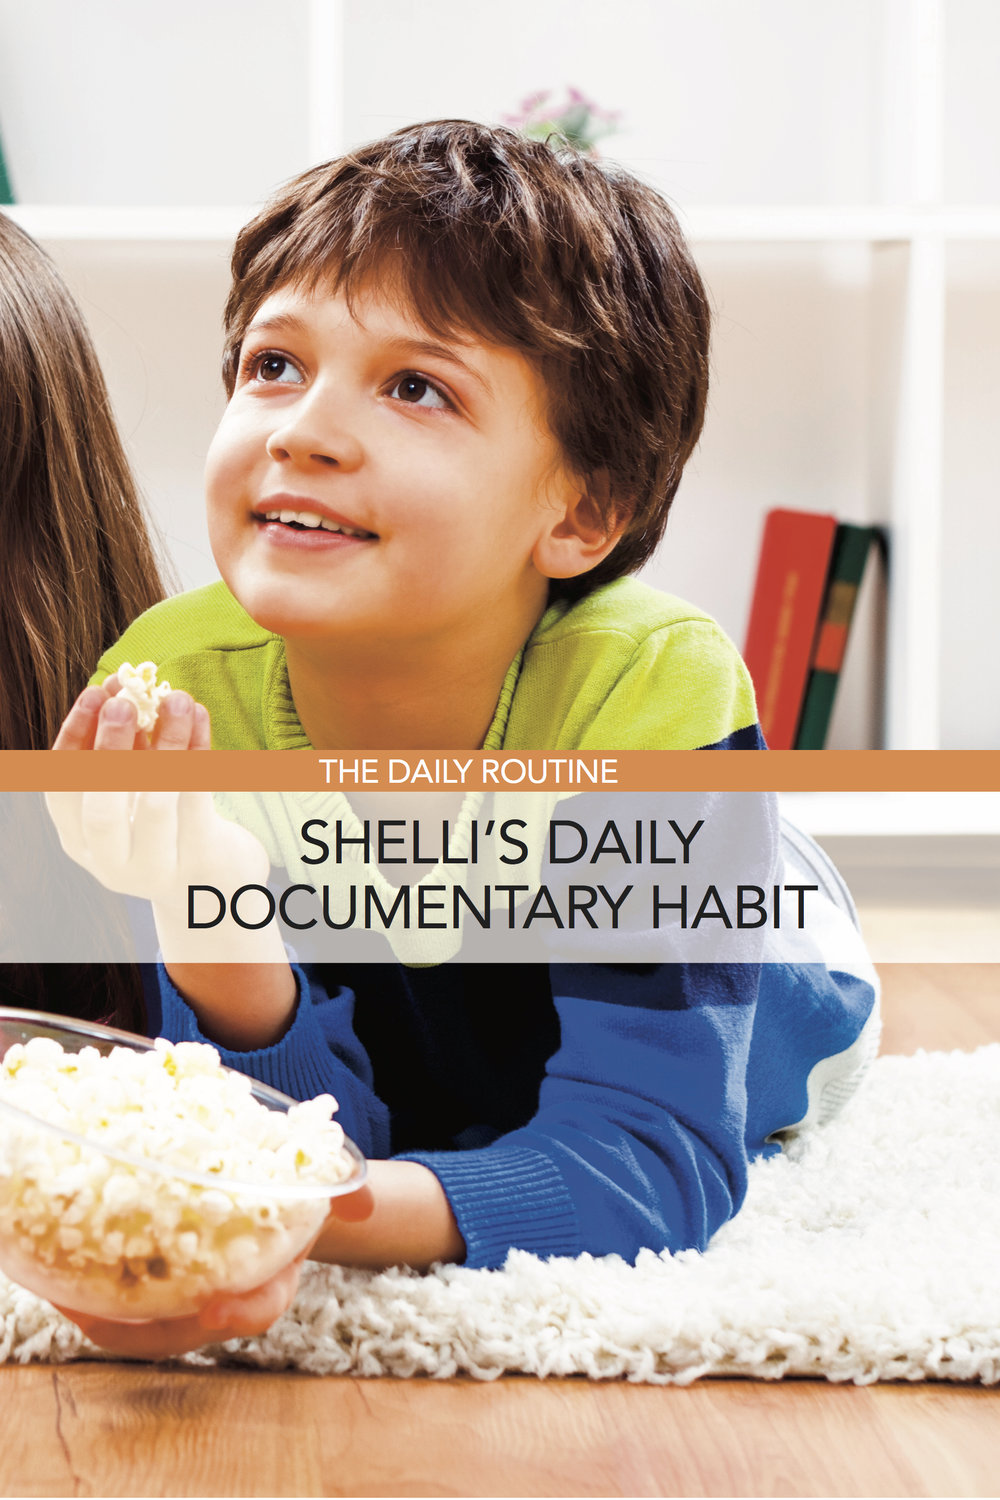 How TV Time Fits into Our Homeschool's Daily Routine